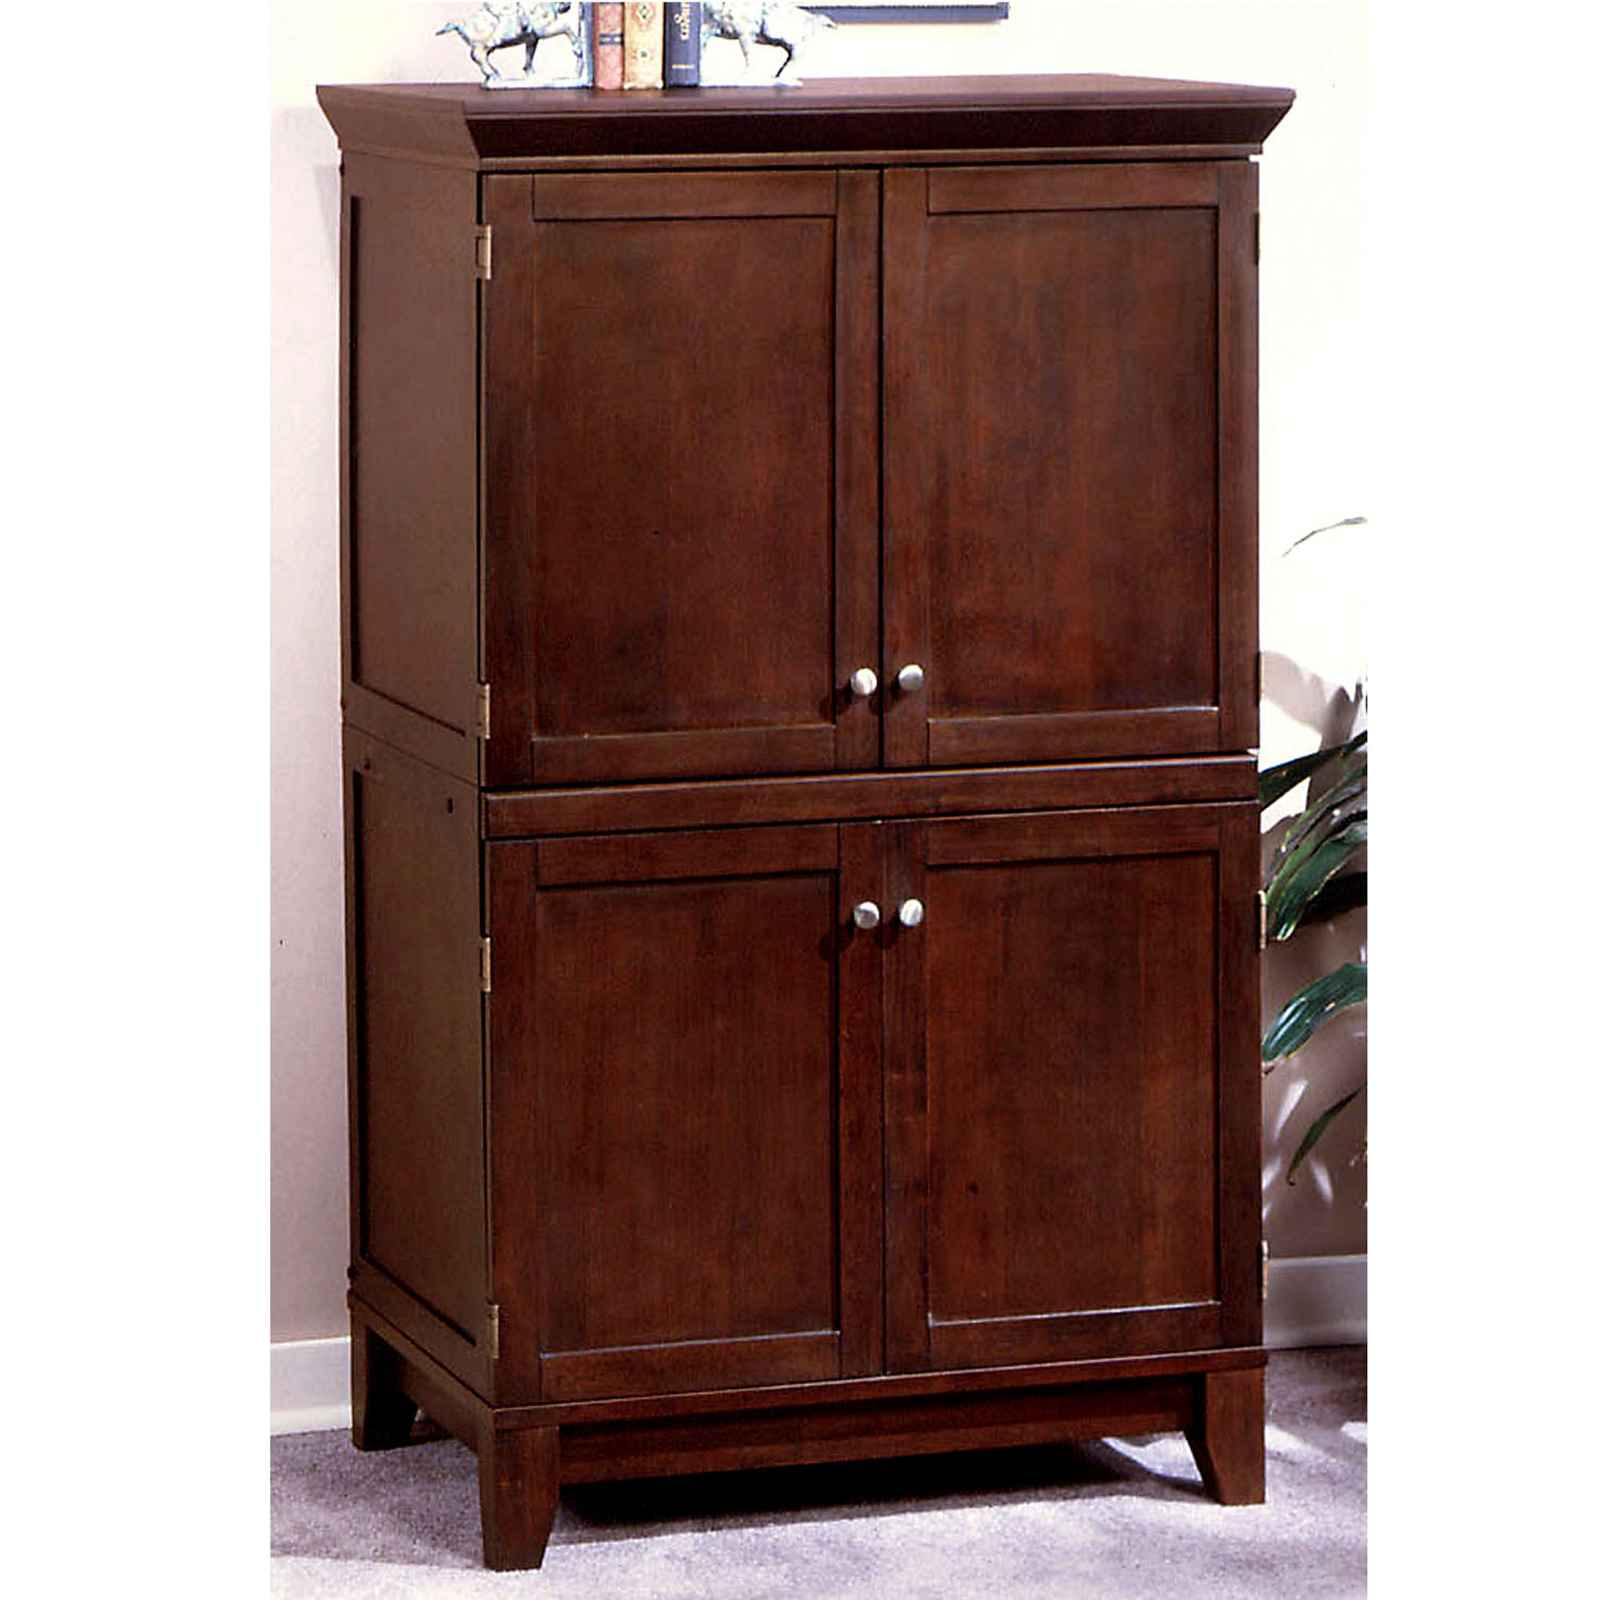 26 unique computer hutch armoire. Black Bedroom Furniture Sets. Home Design Ideas